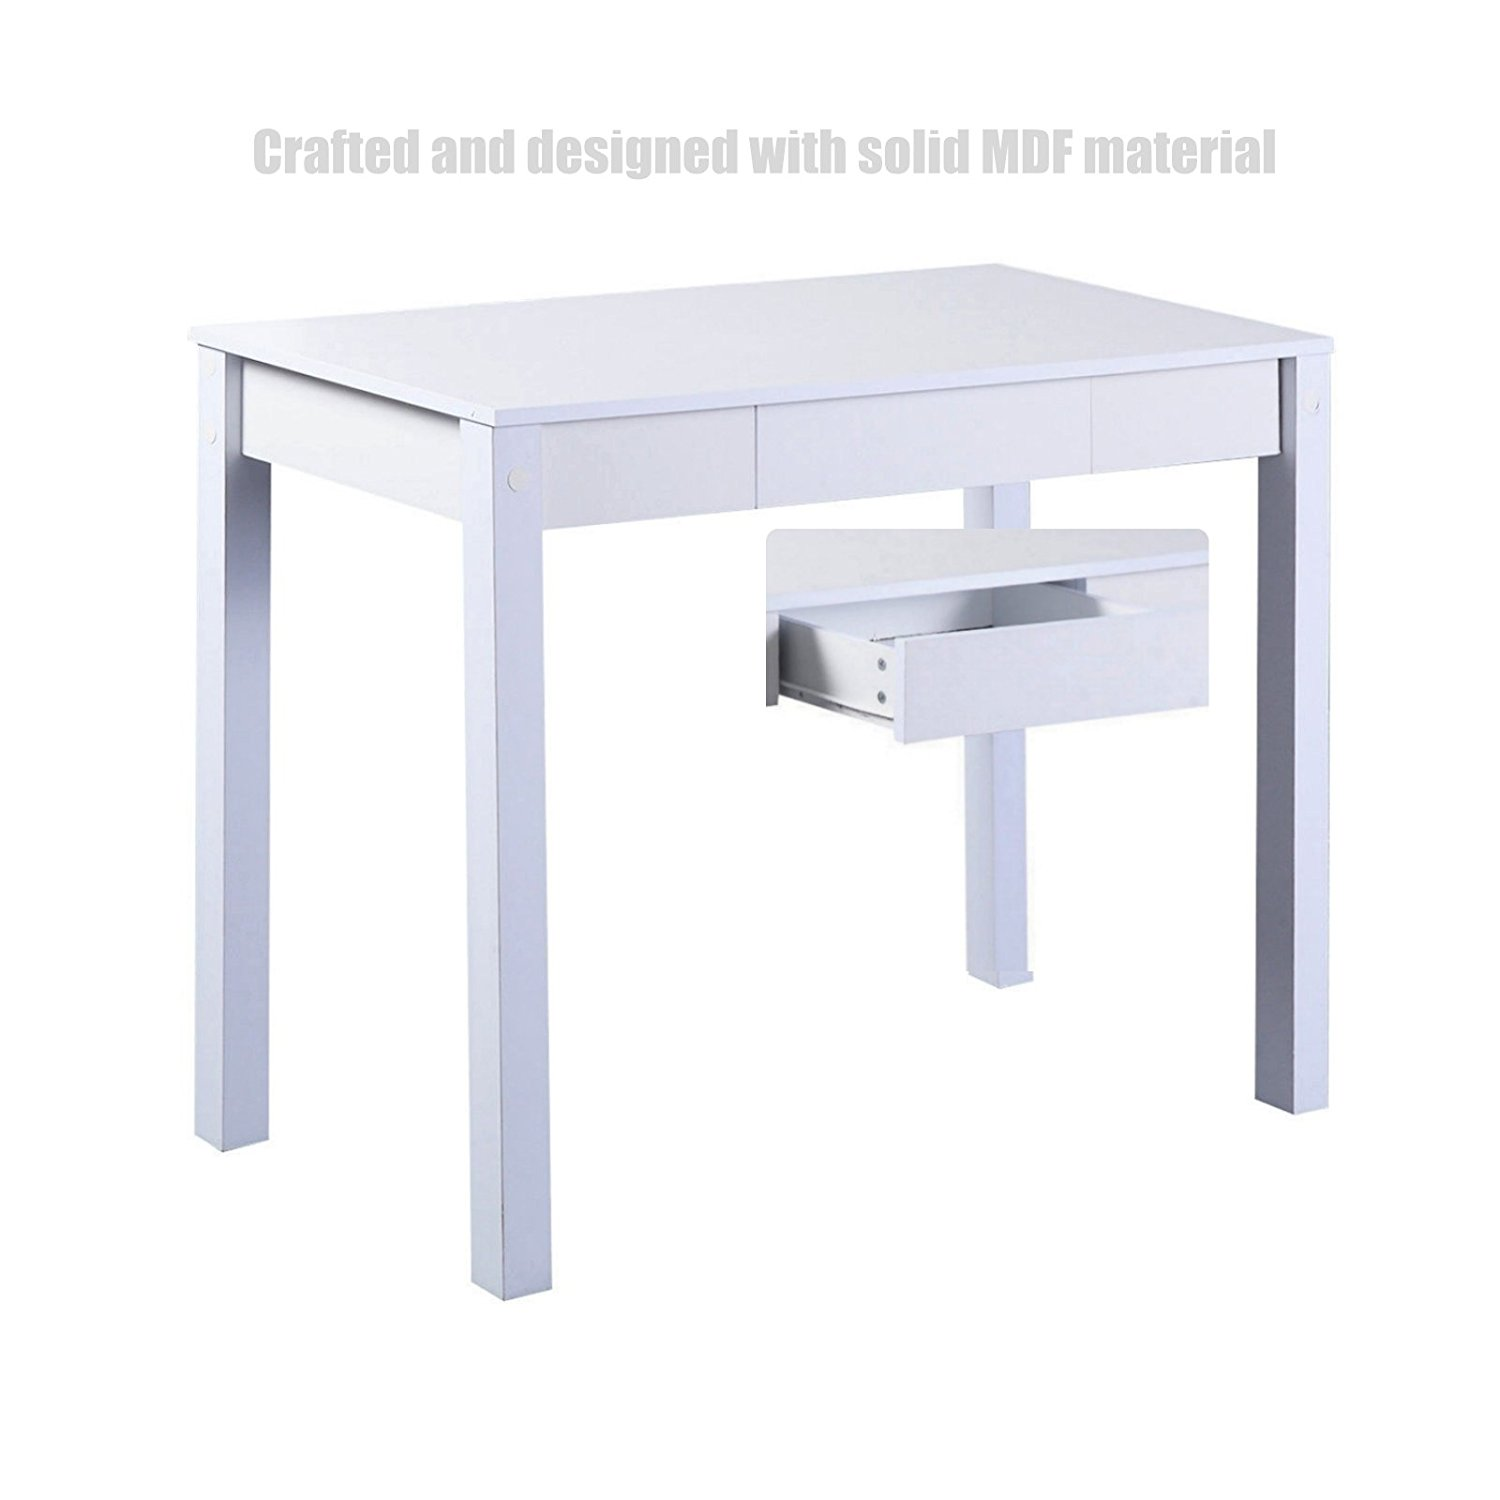 Modern Computer Desk PC Laptop Wood Table Solid MDF Material Multi-Purpose Workstation Home Office Furniture Metal Frame - With Drawer White #1144w